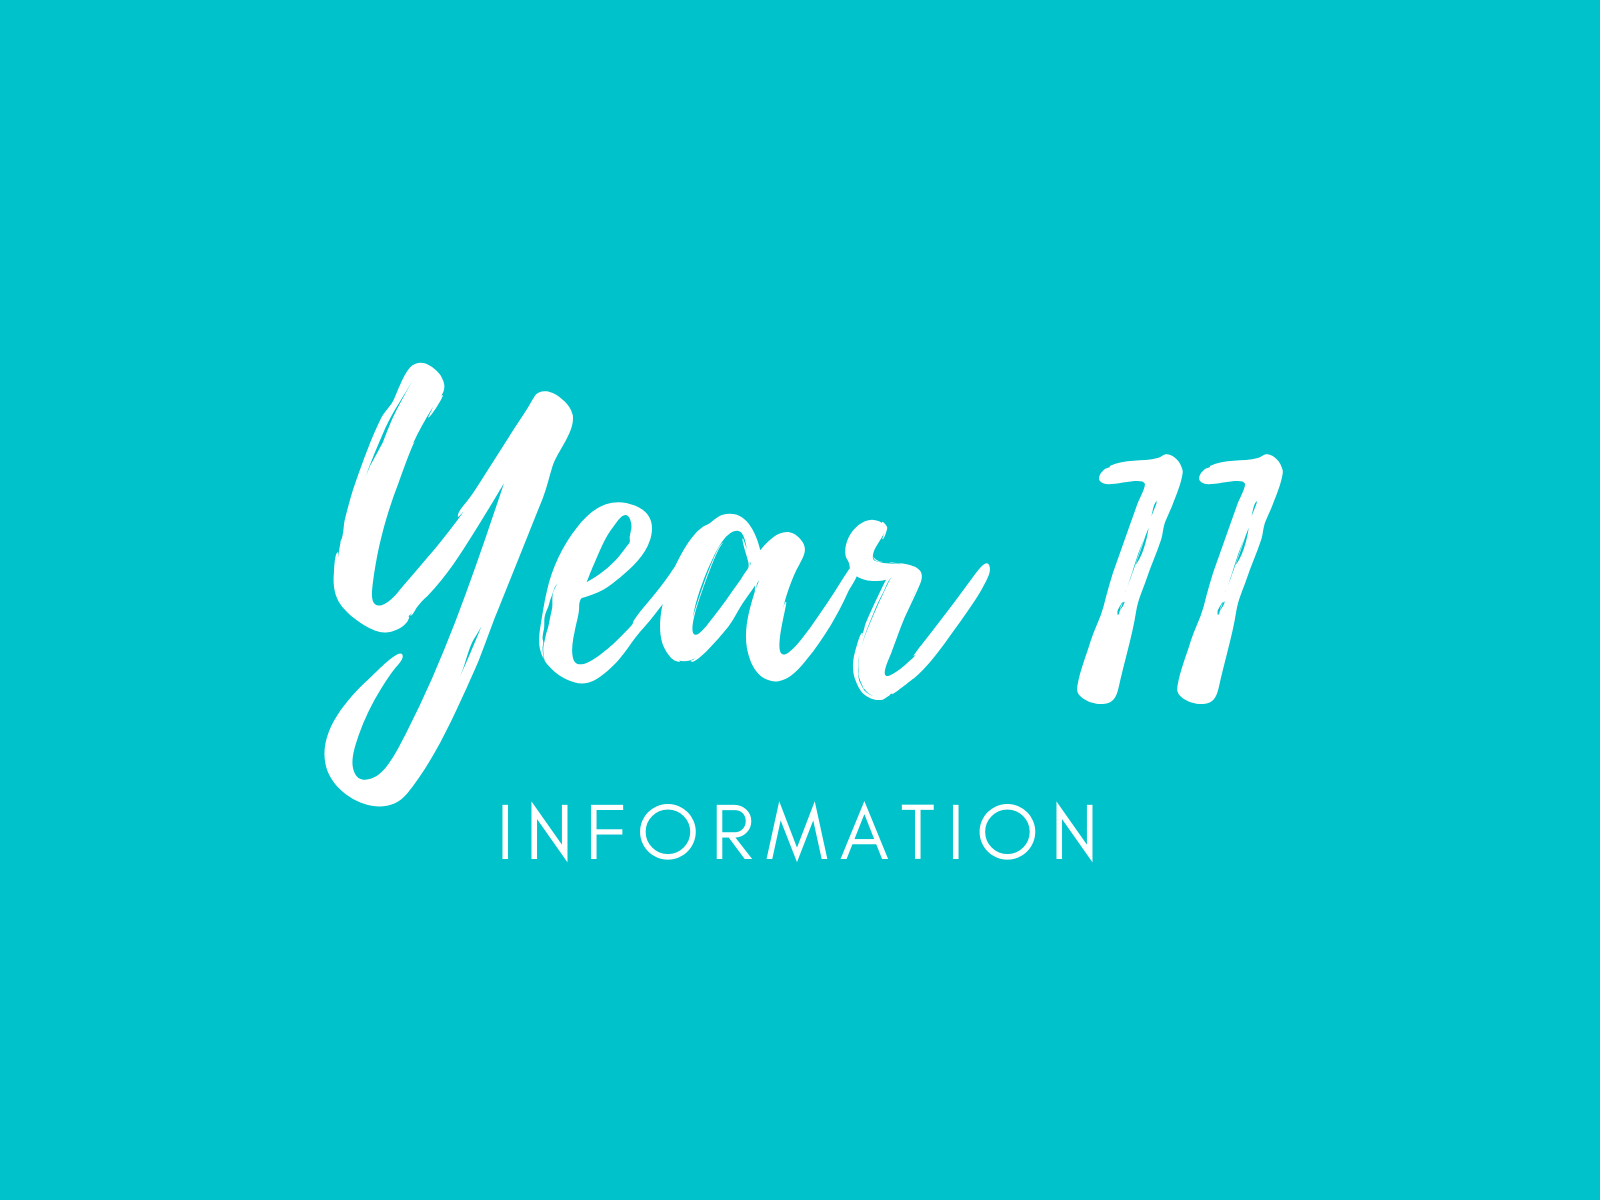 Year 11 College Information